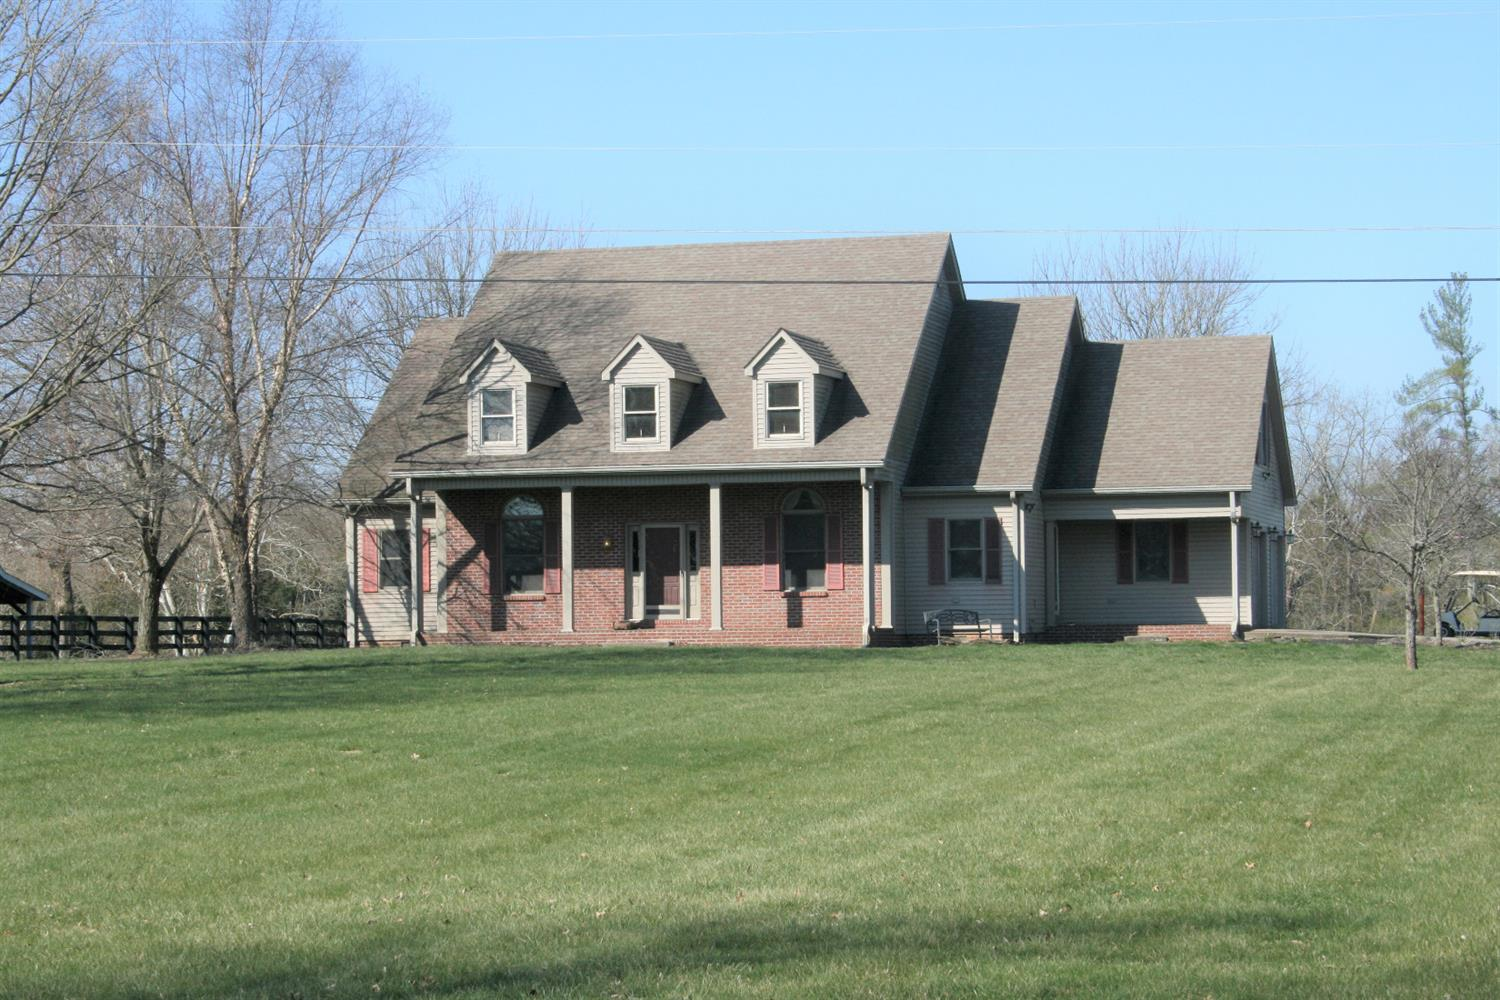 Home For Sale at 927 Sunset Dr, Harrodsburg, KY 40330